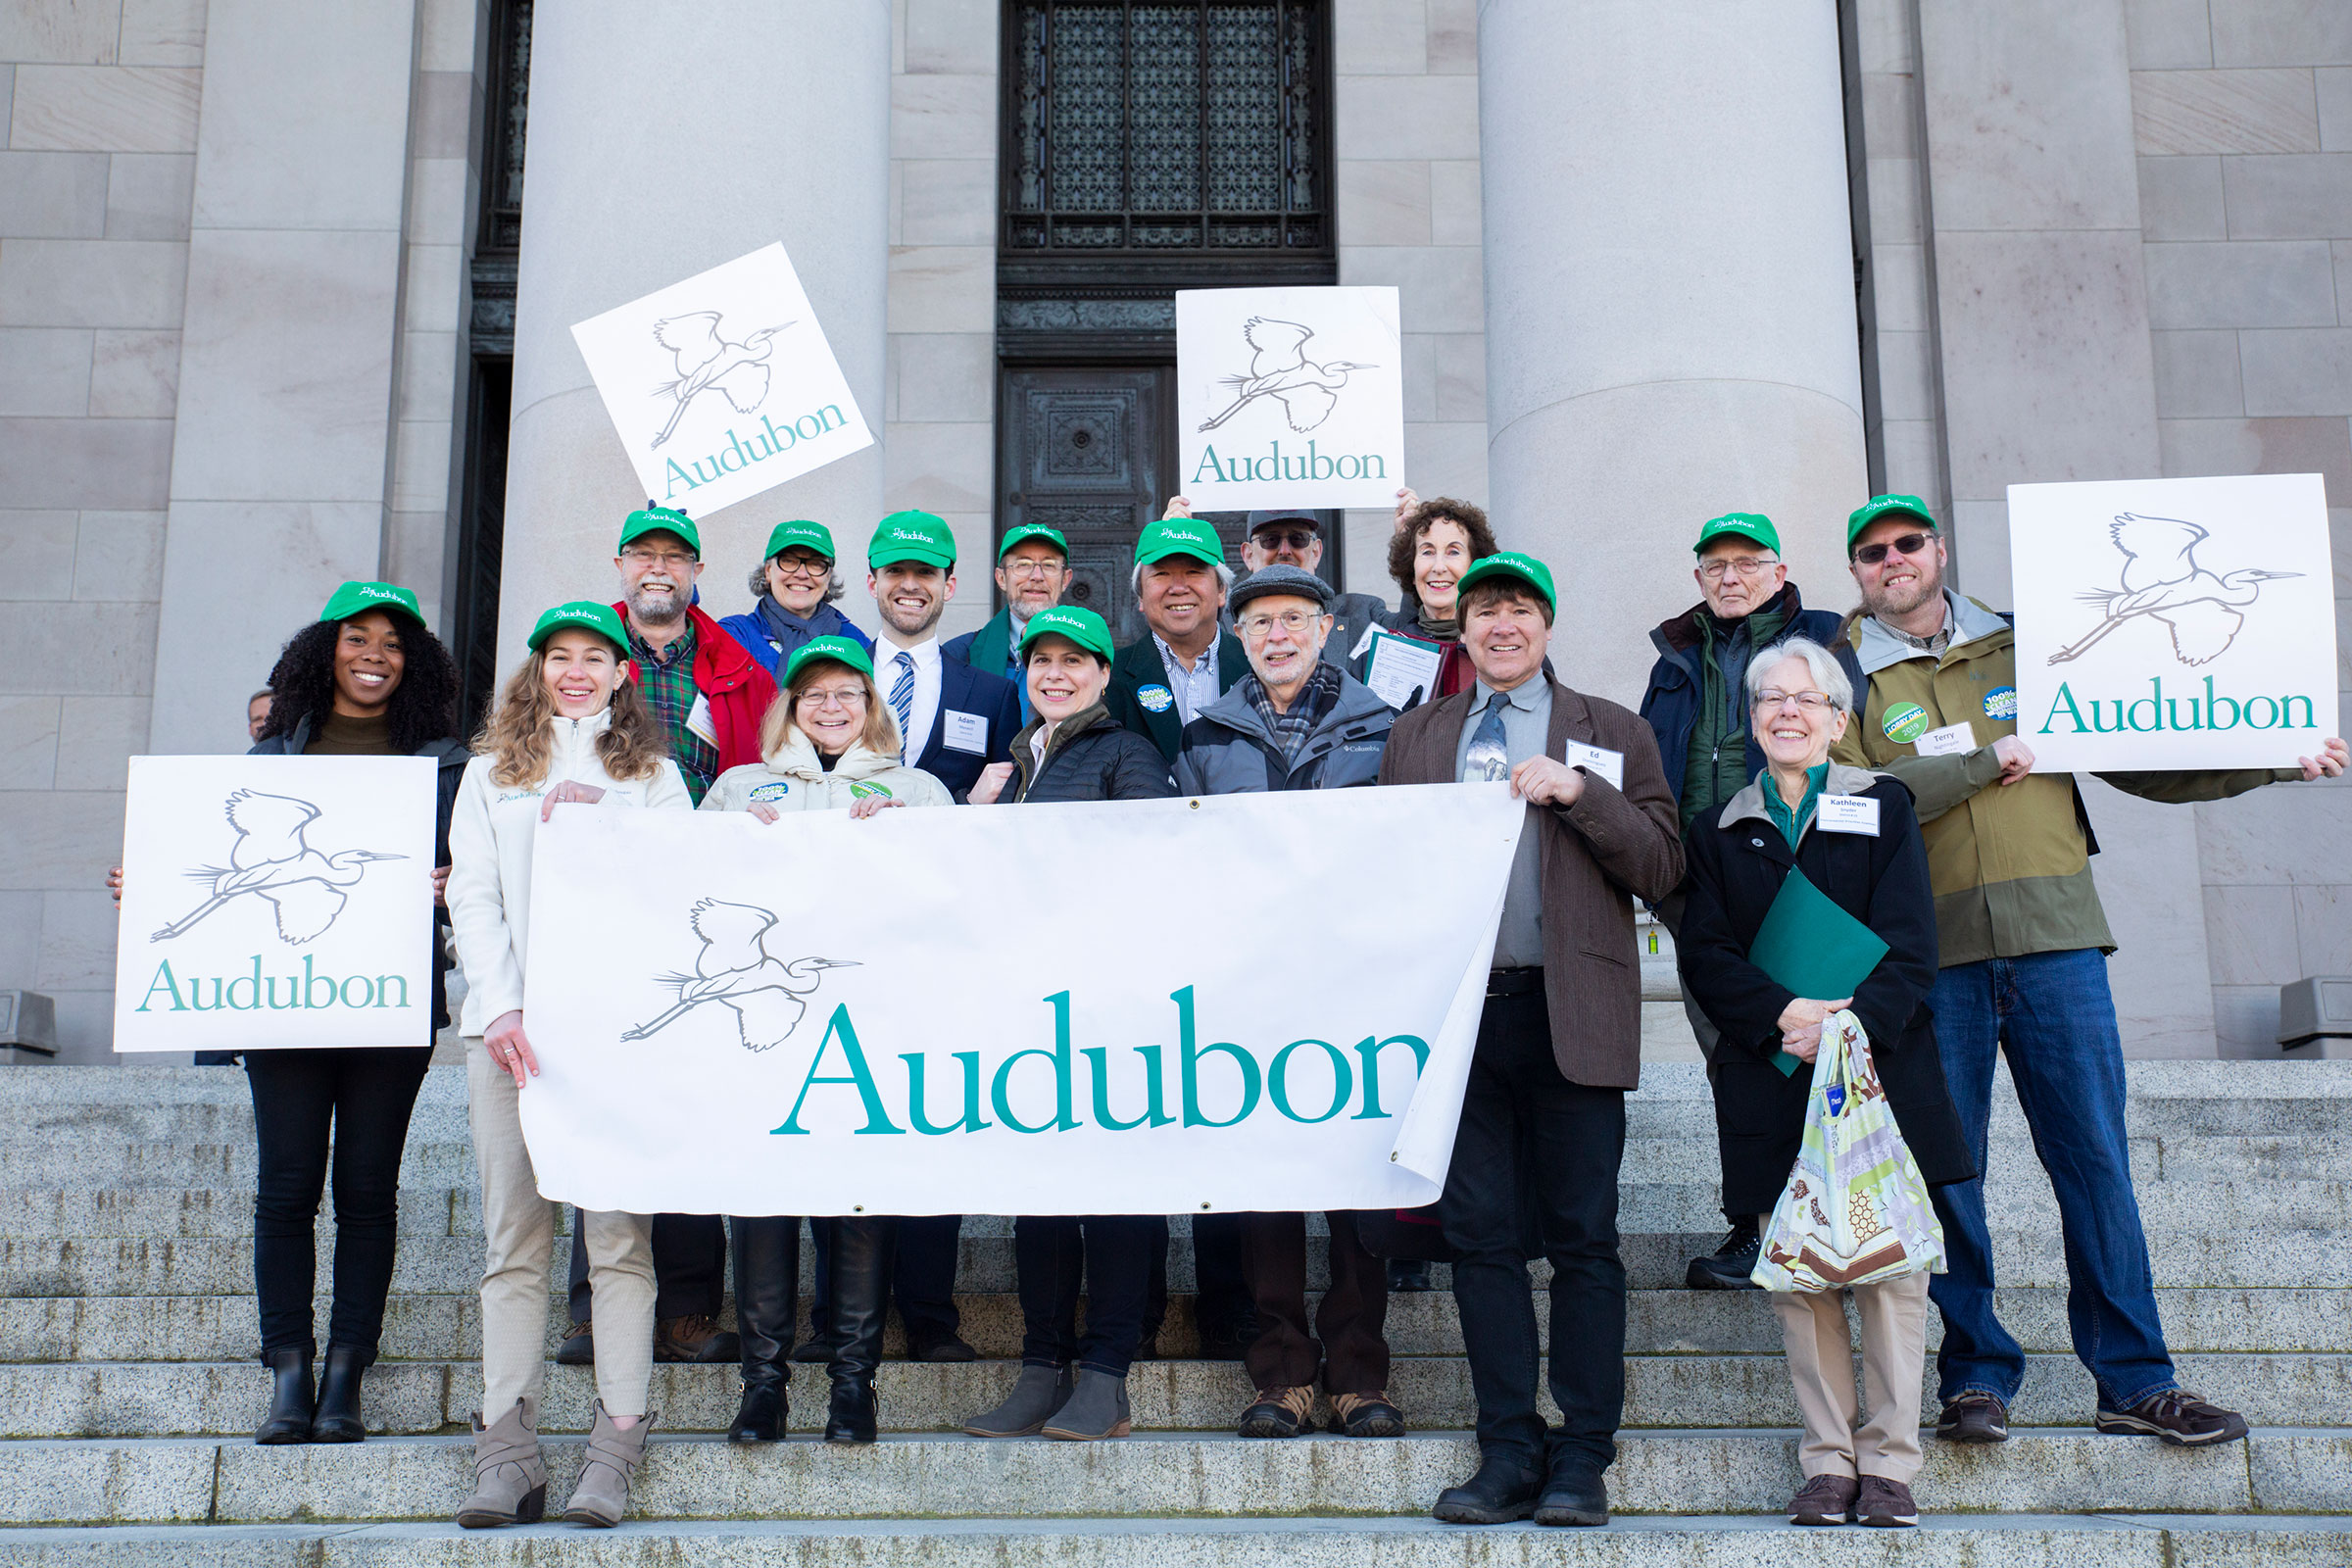 Audubon members and staff, along with others from the Environmental Priorities Coalition, visit the state capitol on Environmental Lobby Day in Olympia, Washington. Luke Franke/Audubon